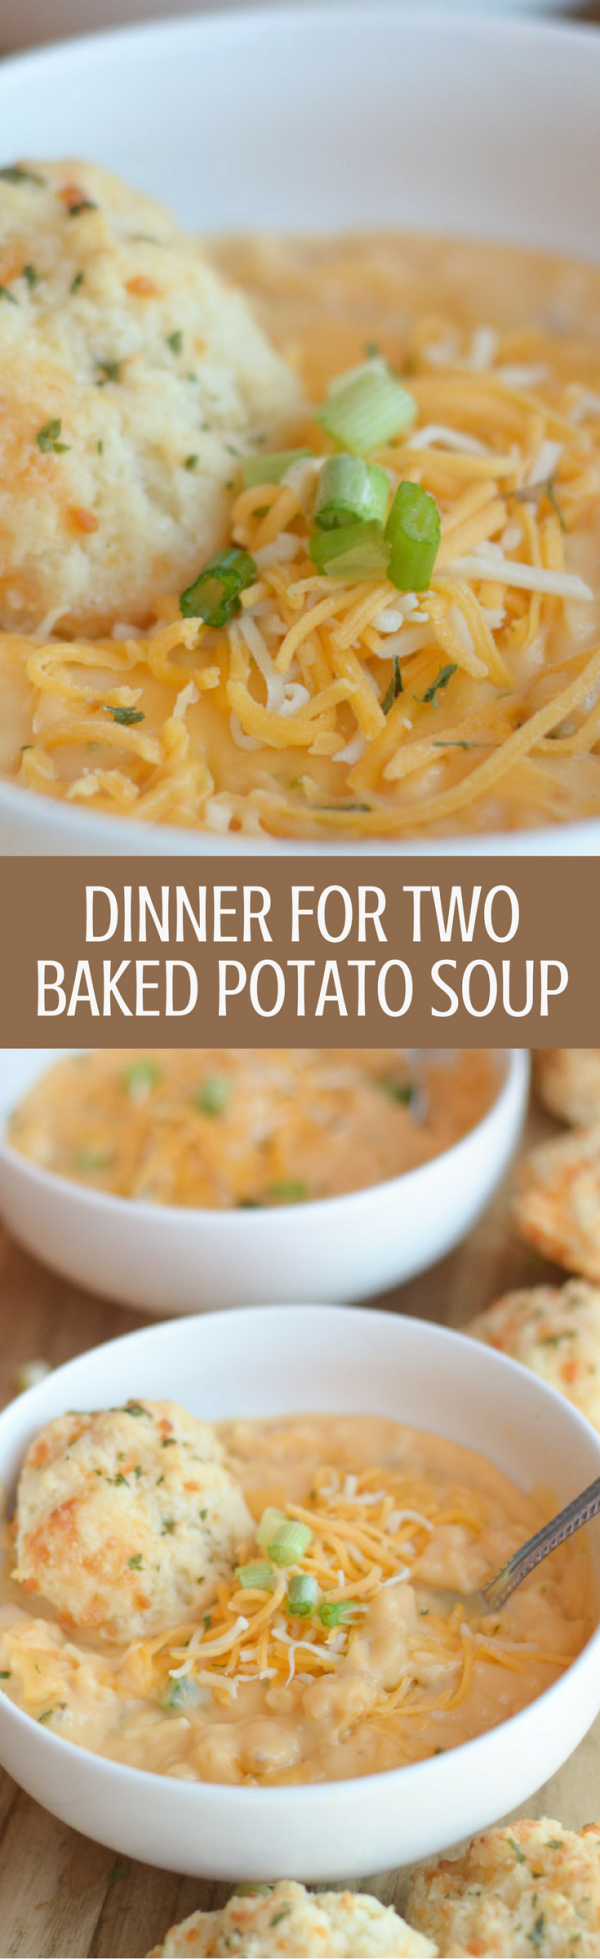 Dinner for Two - Baked Potato Soup